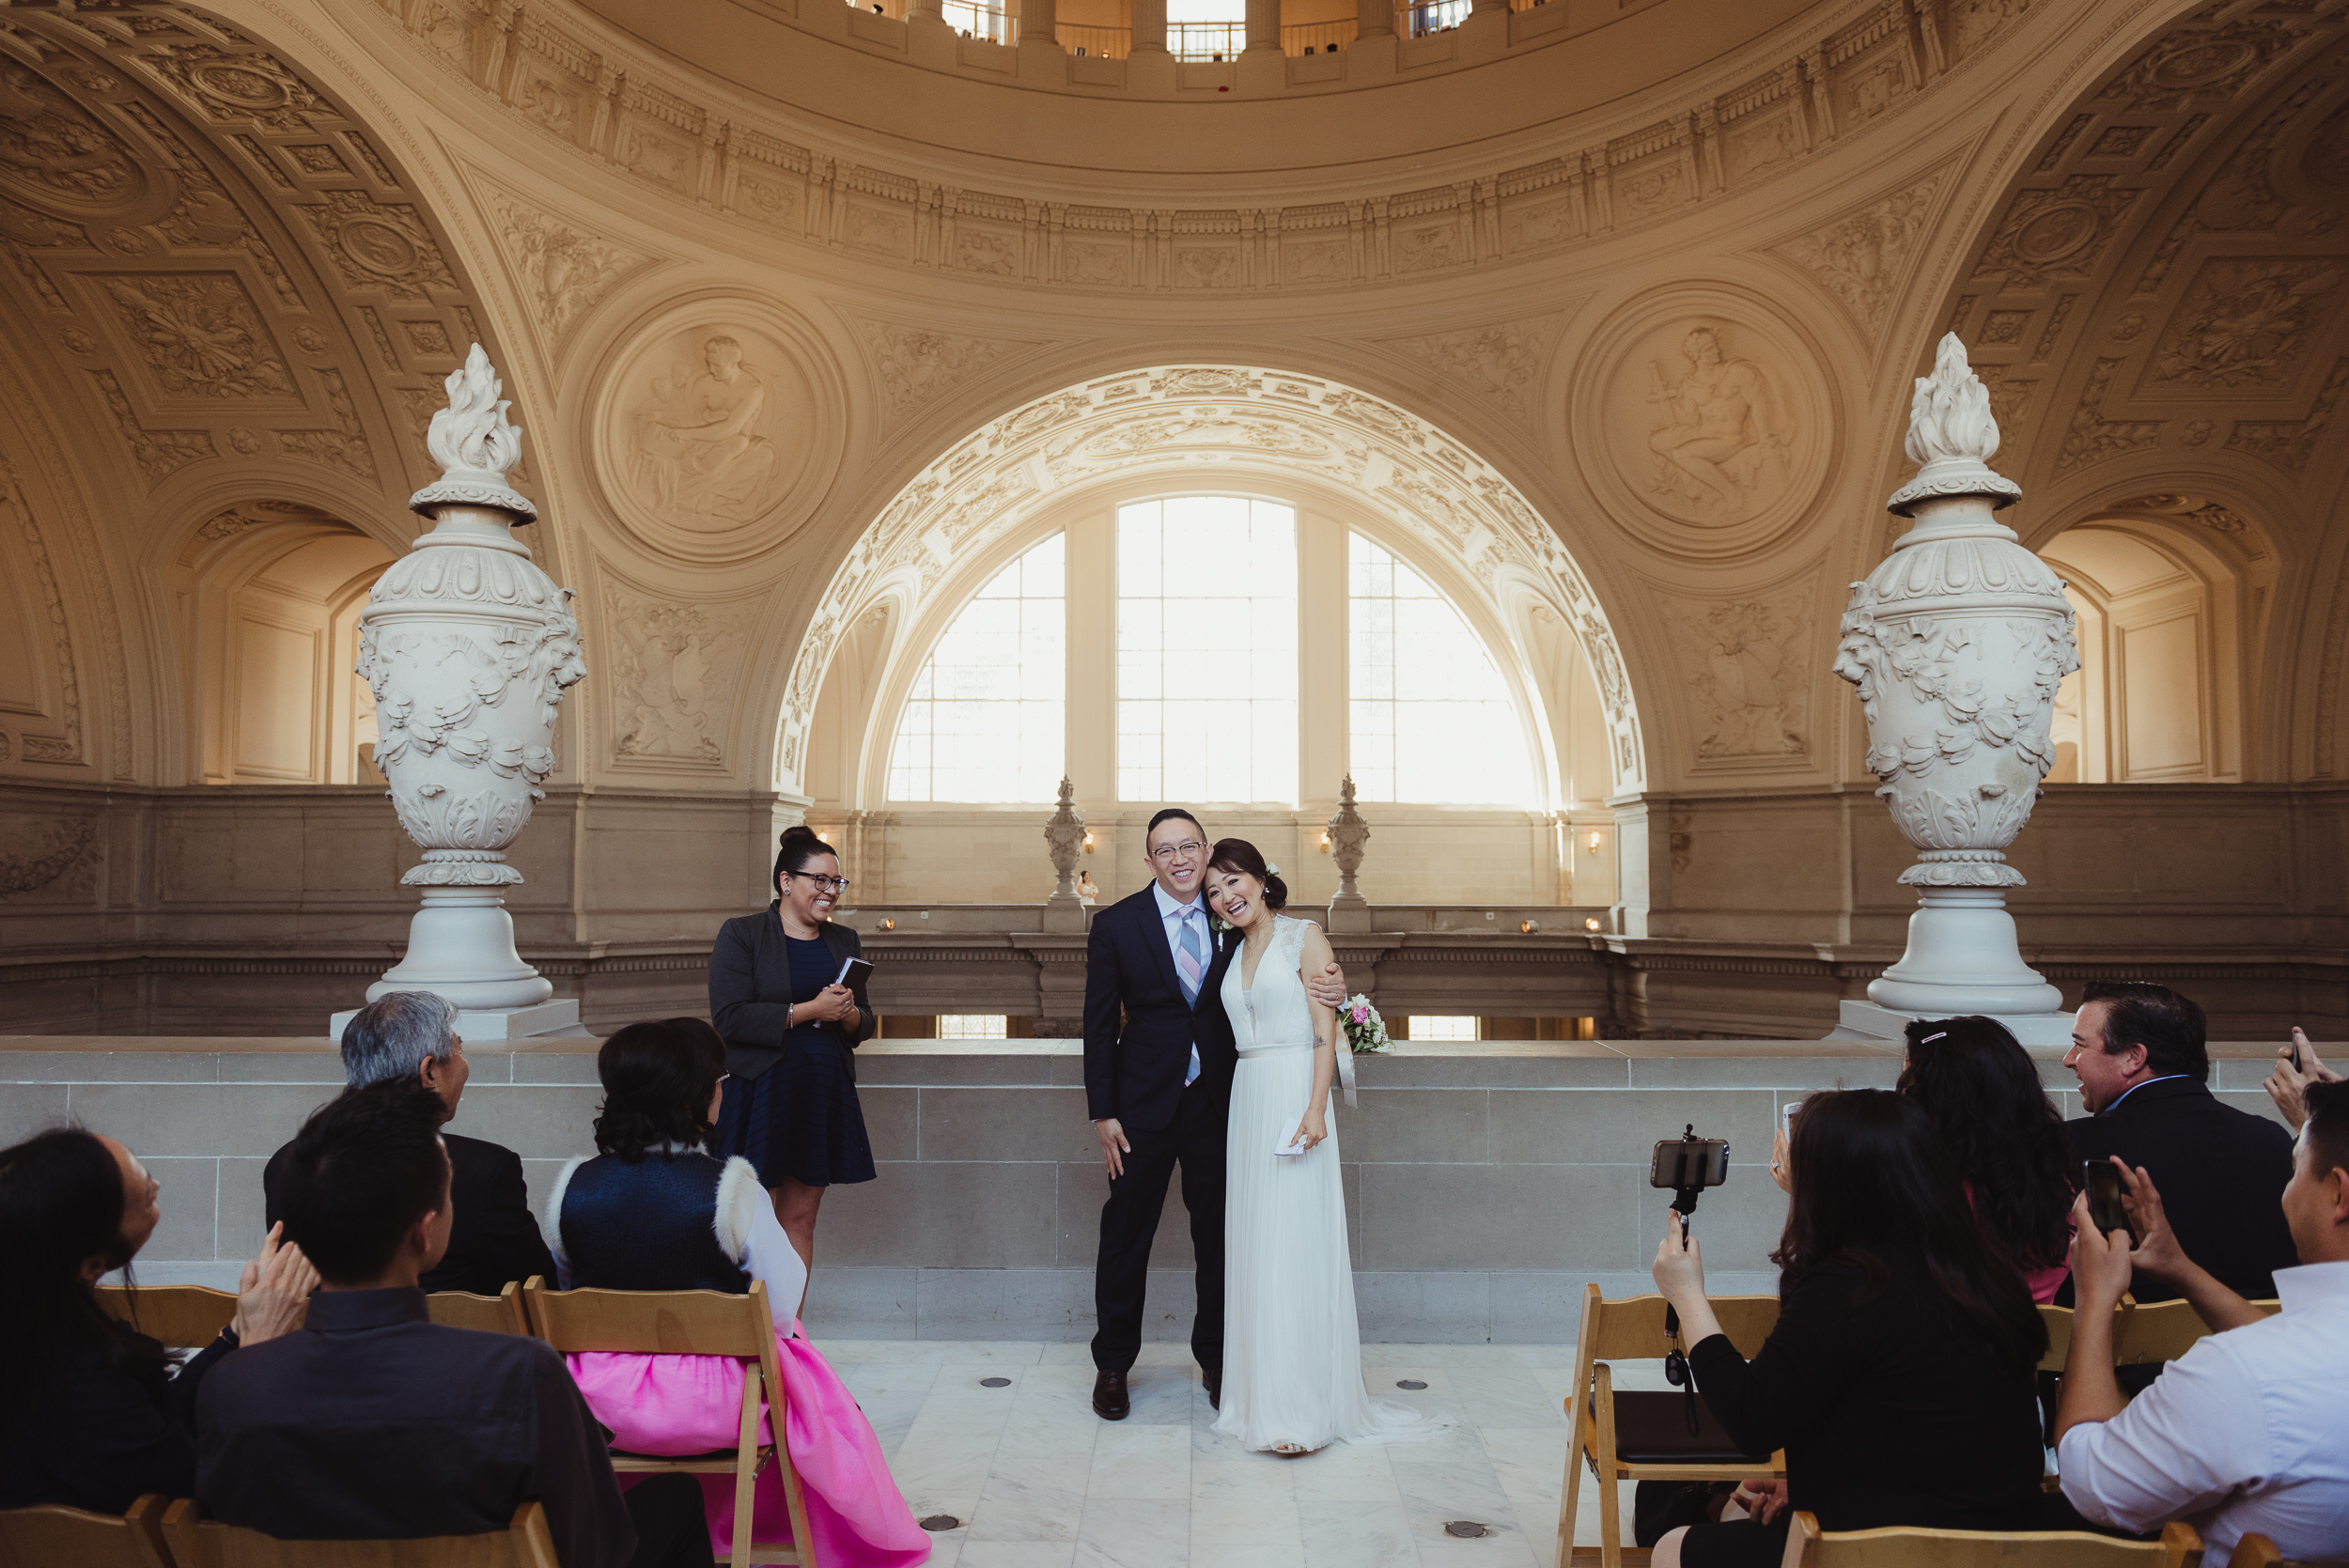 15-sf-city-hall-wedding-lands-end-vivianchen-176.jpg